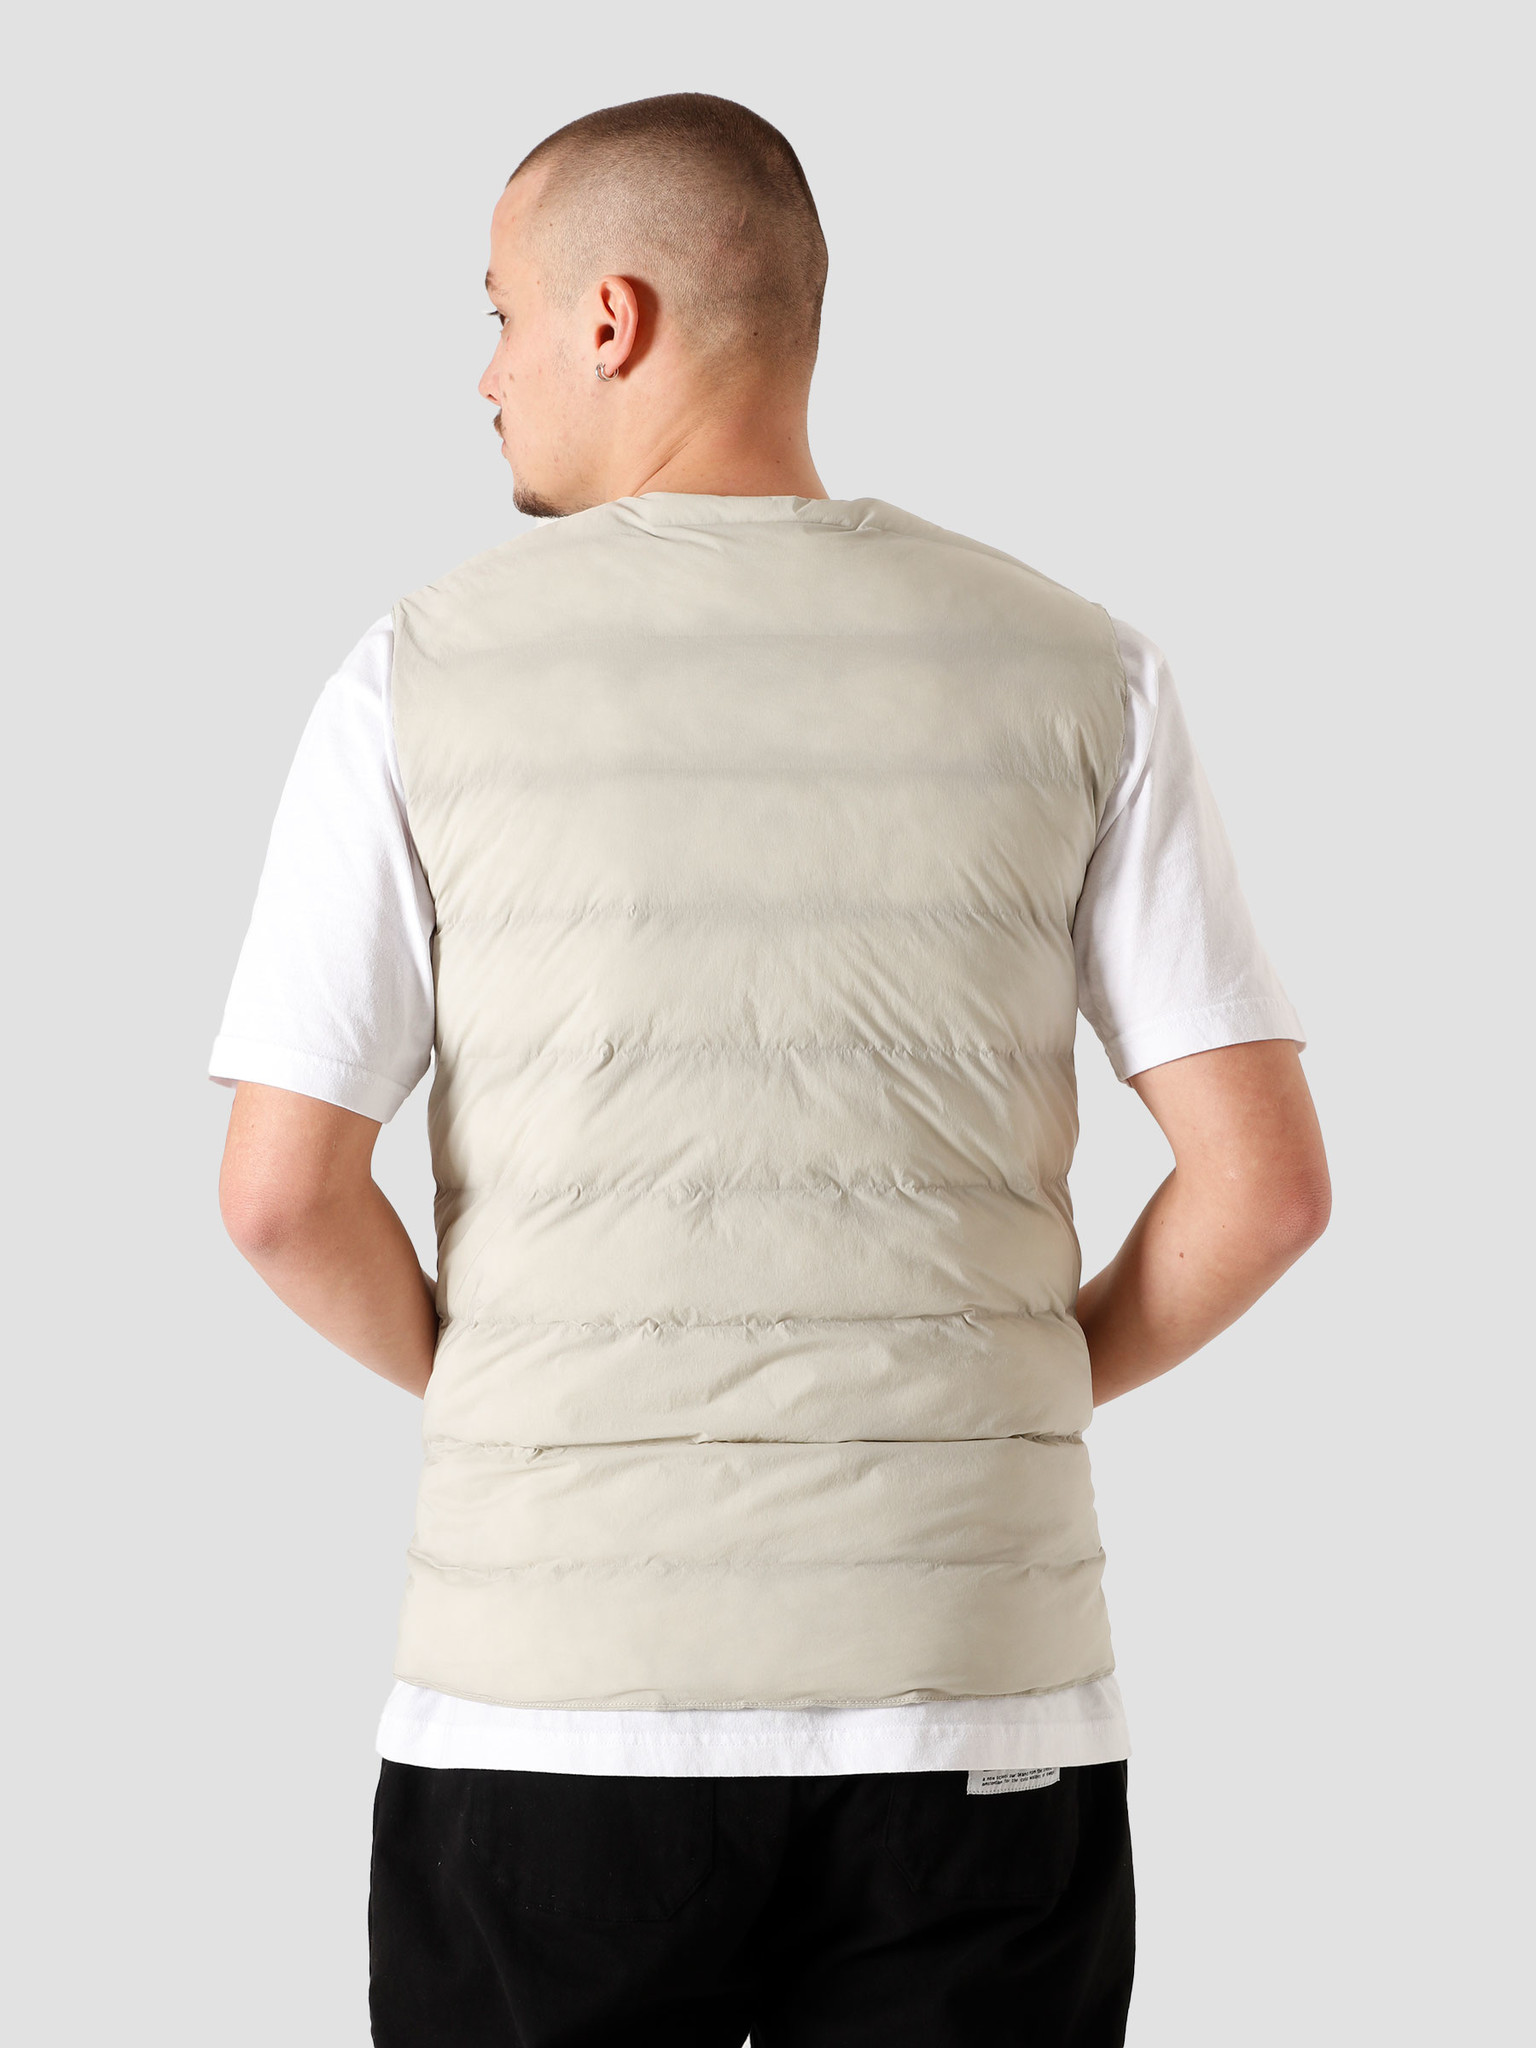 New Amsterdam Surf Association New Amsterdam Surf association Rib Vest Reversible Taupe Grey 2021091